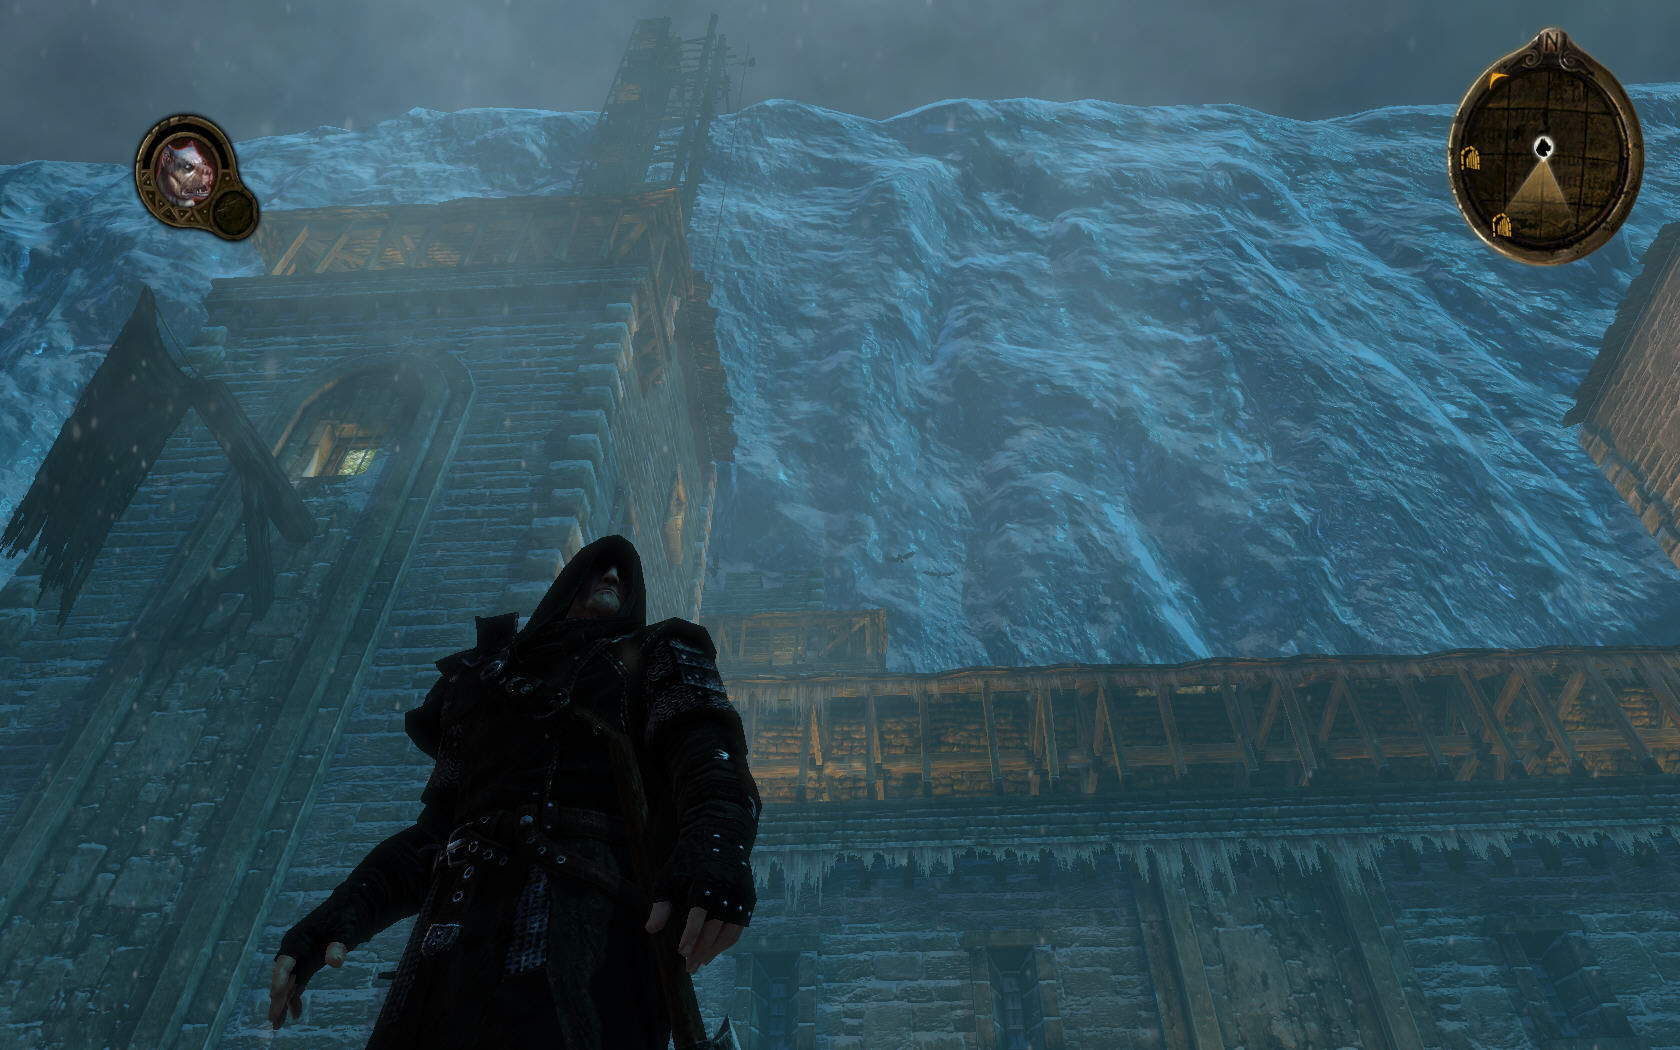 Game of Thrones Windows Mors is looking at the enormous wall of ice he has sworn to protect